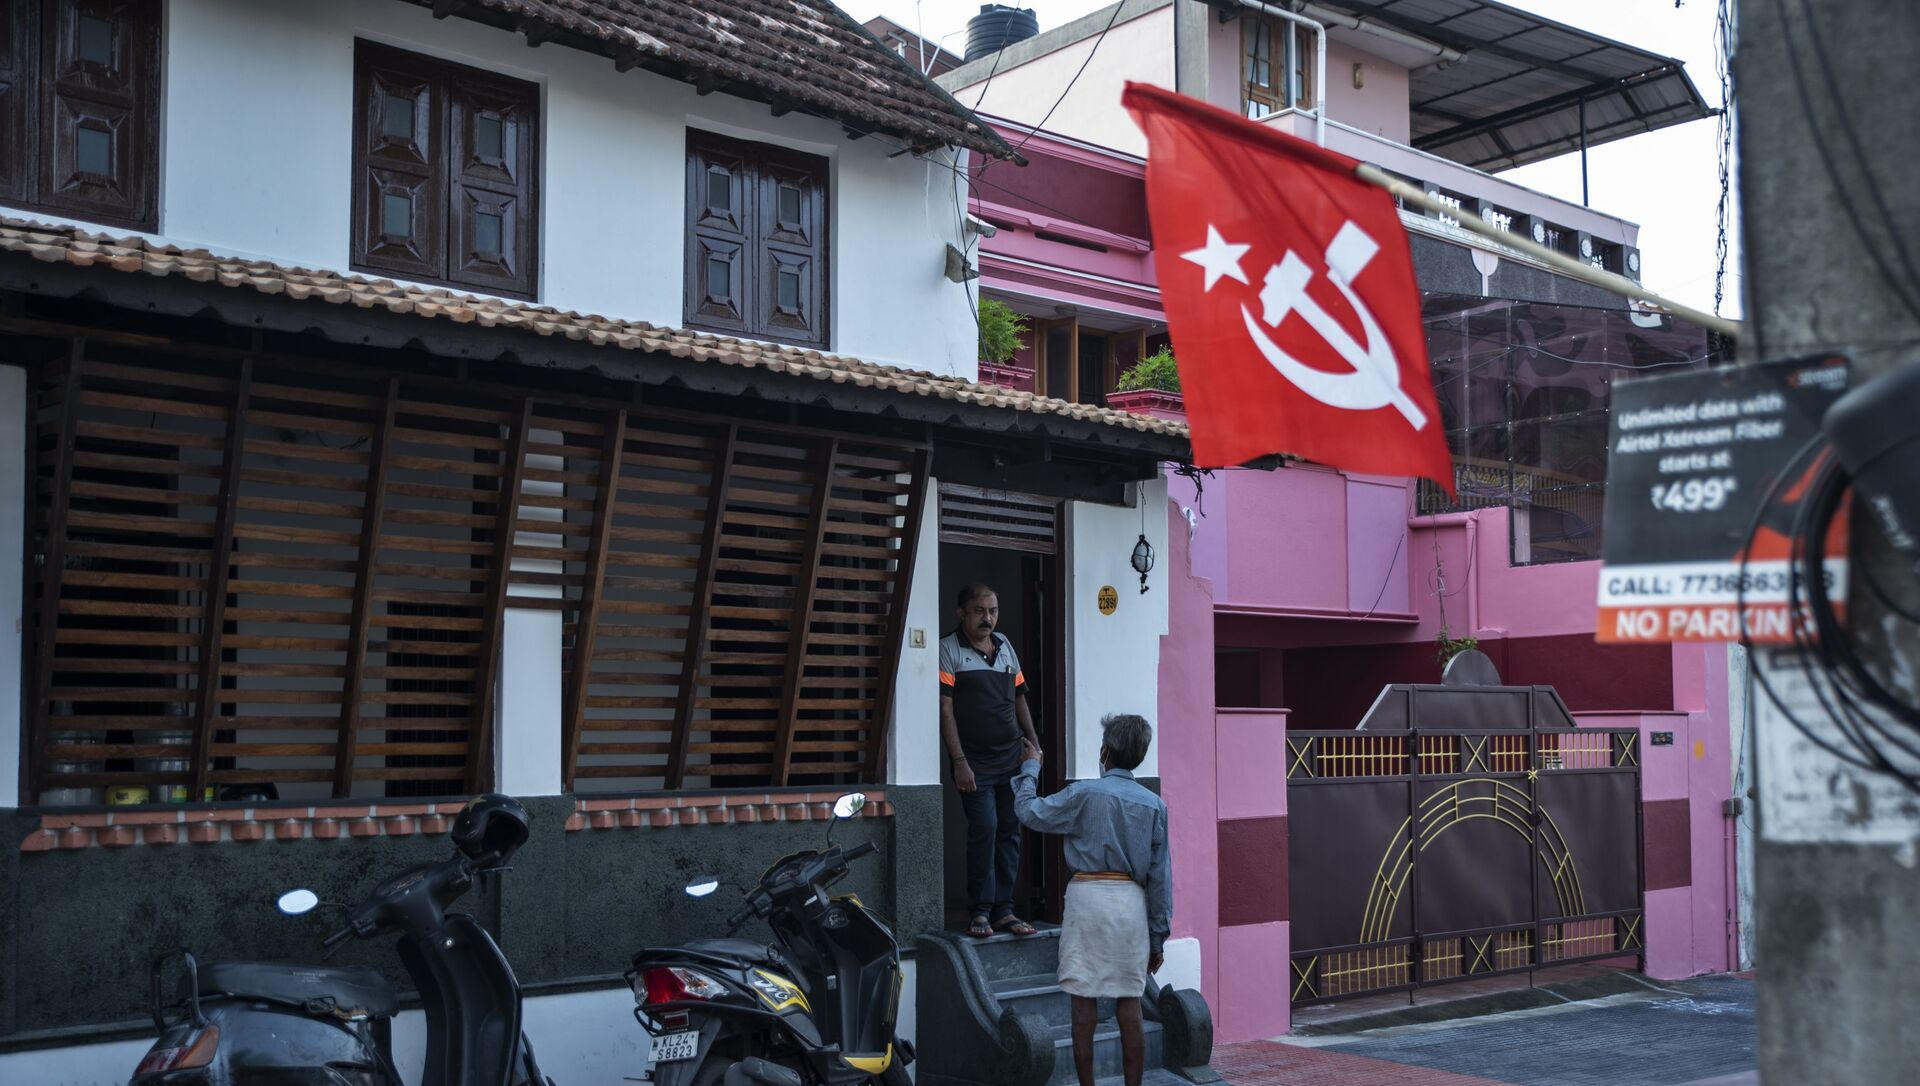 A man talks to his neighbor as a Communist Party of India (Marxist) flag is displayed as part of election campaign at a street inhabited by members of the Tamil Brahmin community in Thiruvanathapuram, Kerala state, India, Saturday, April 3, 2021.  - Sputnik International, 1920, 03.08.2021